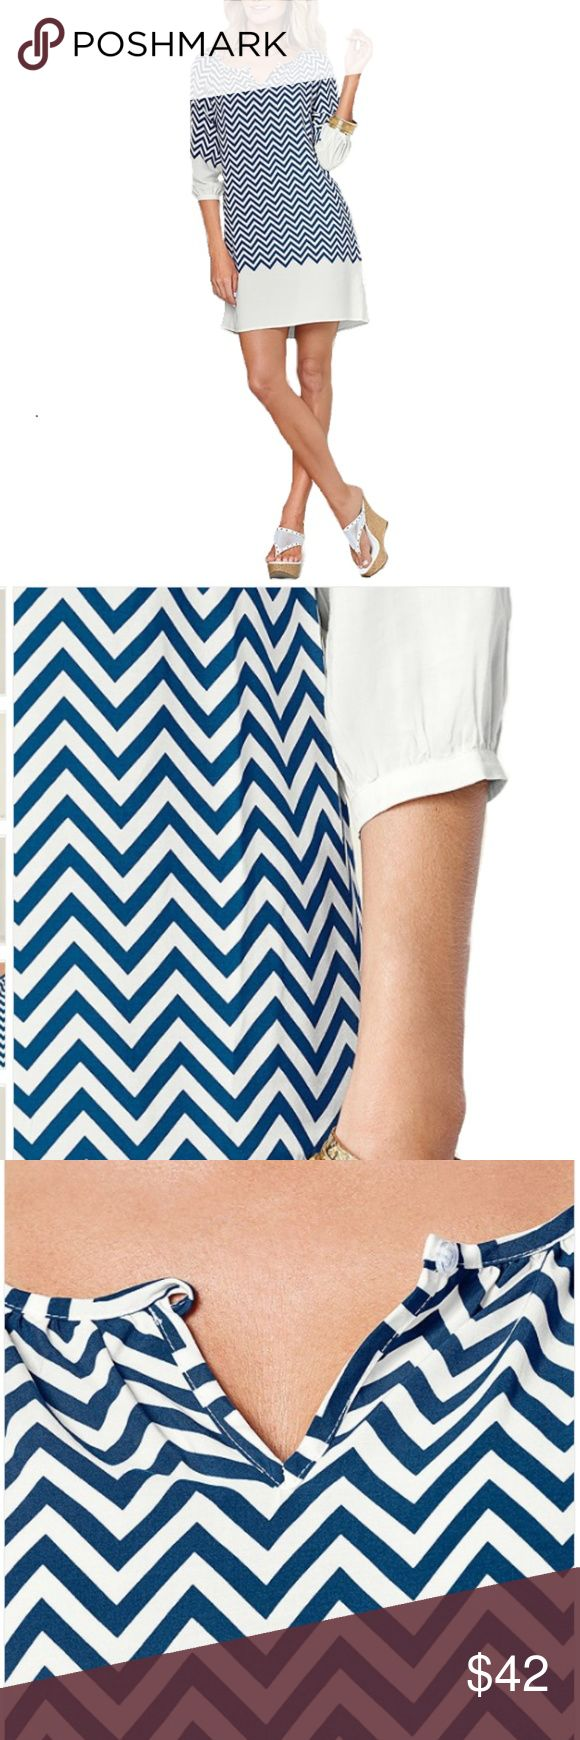 """CHEVRON PRINT DRESS Beautiful chevron print dress gently worn A-line dress is complete with split neck and 3/4 length sleeves with buttons on wrists. 19"""" in length from natural waist •No trades •Will consider reasonable offers VENUS Dresses Mini"""